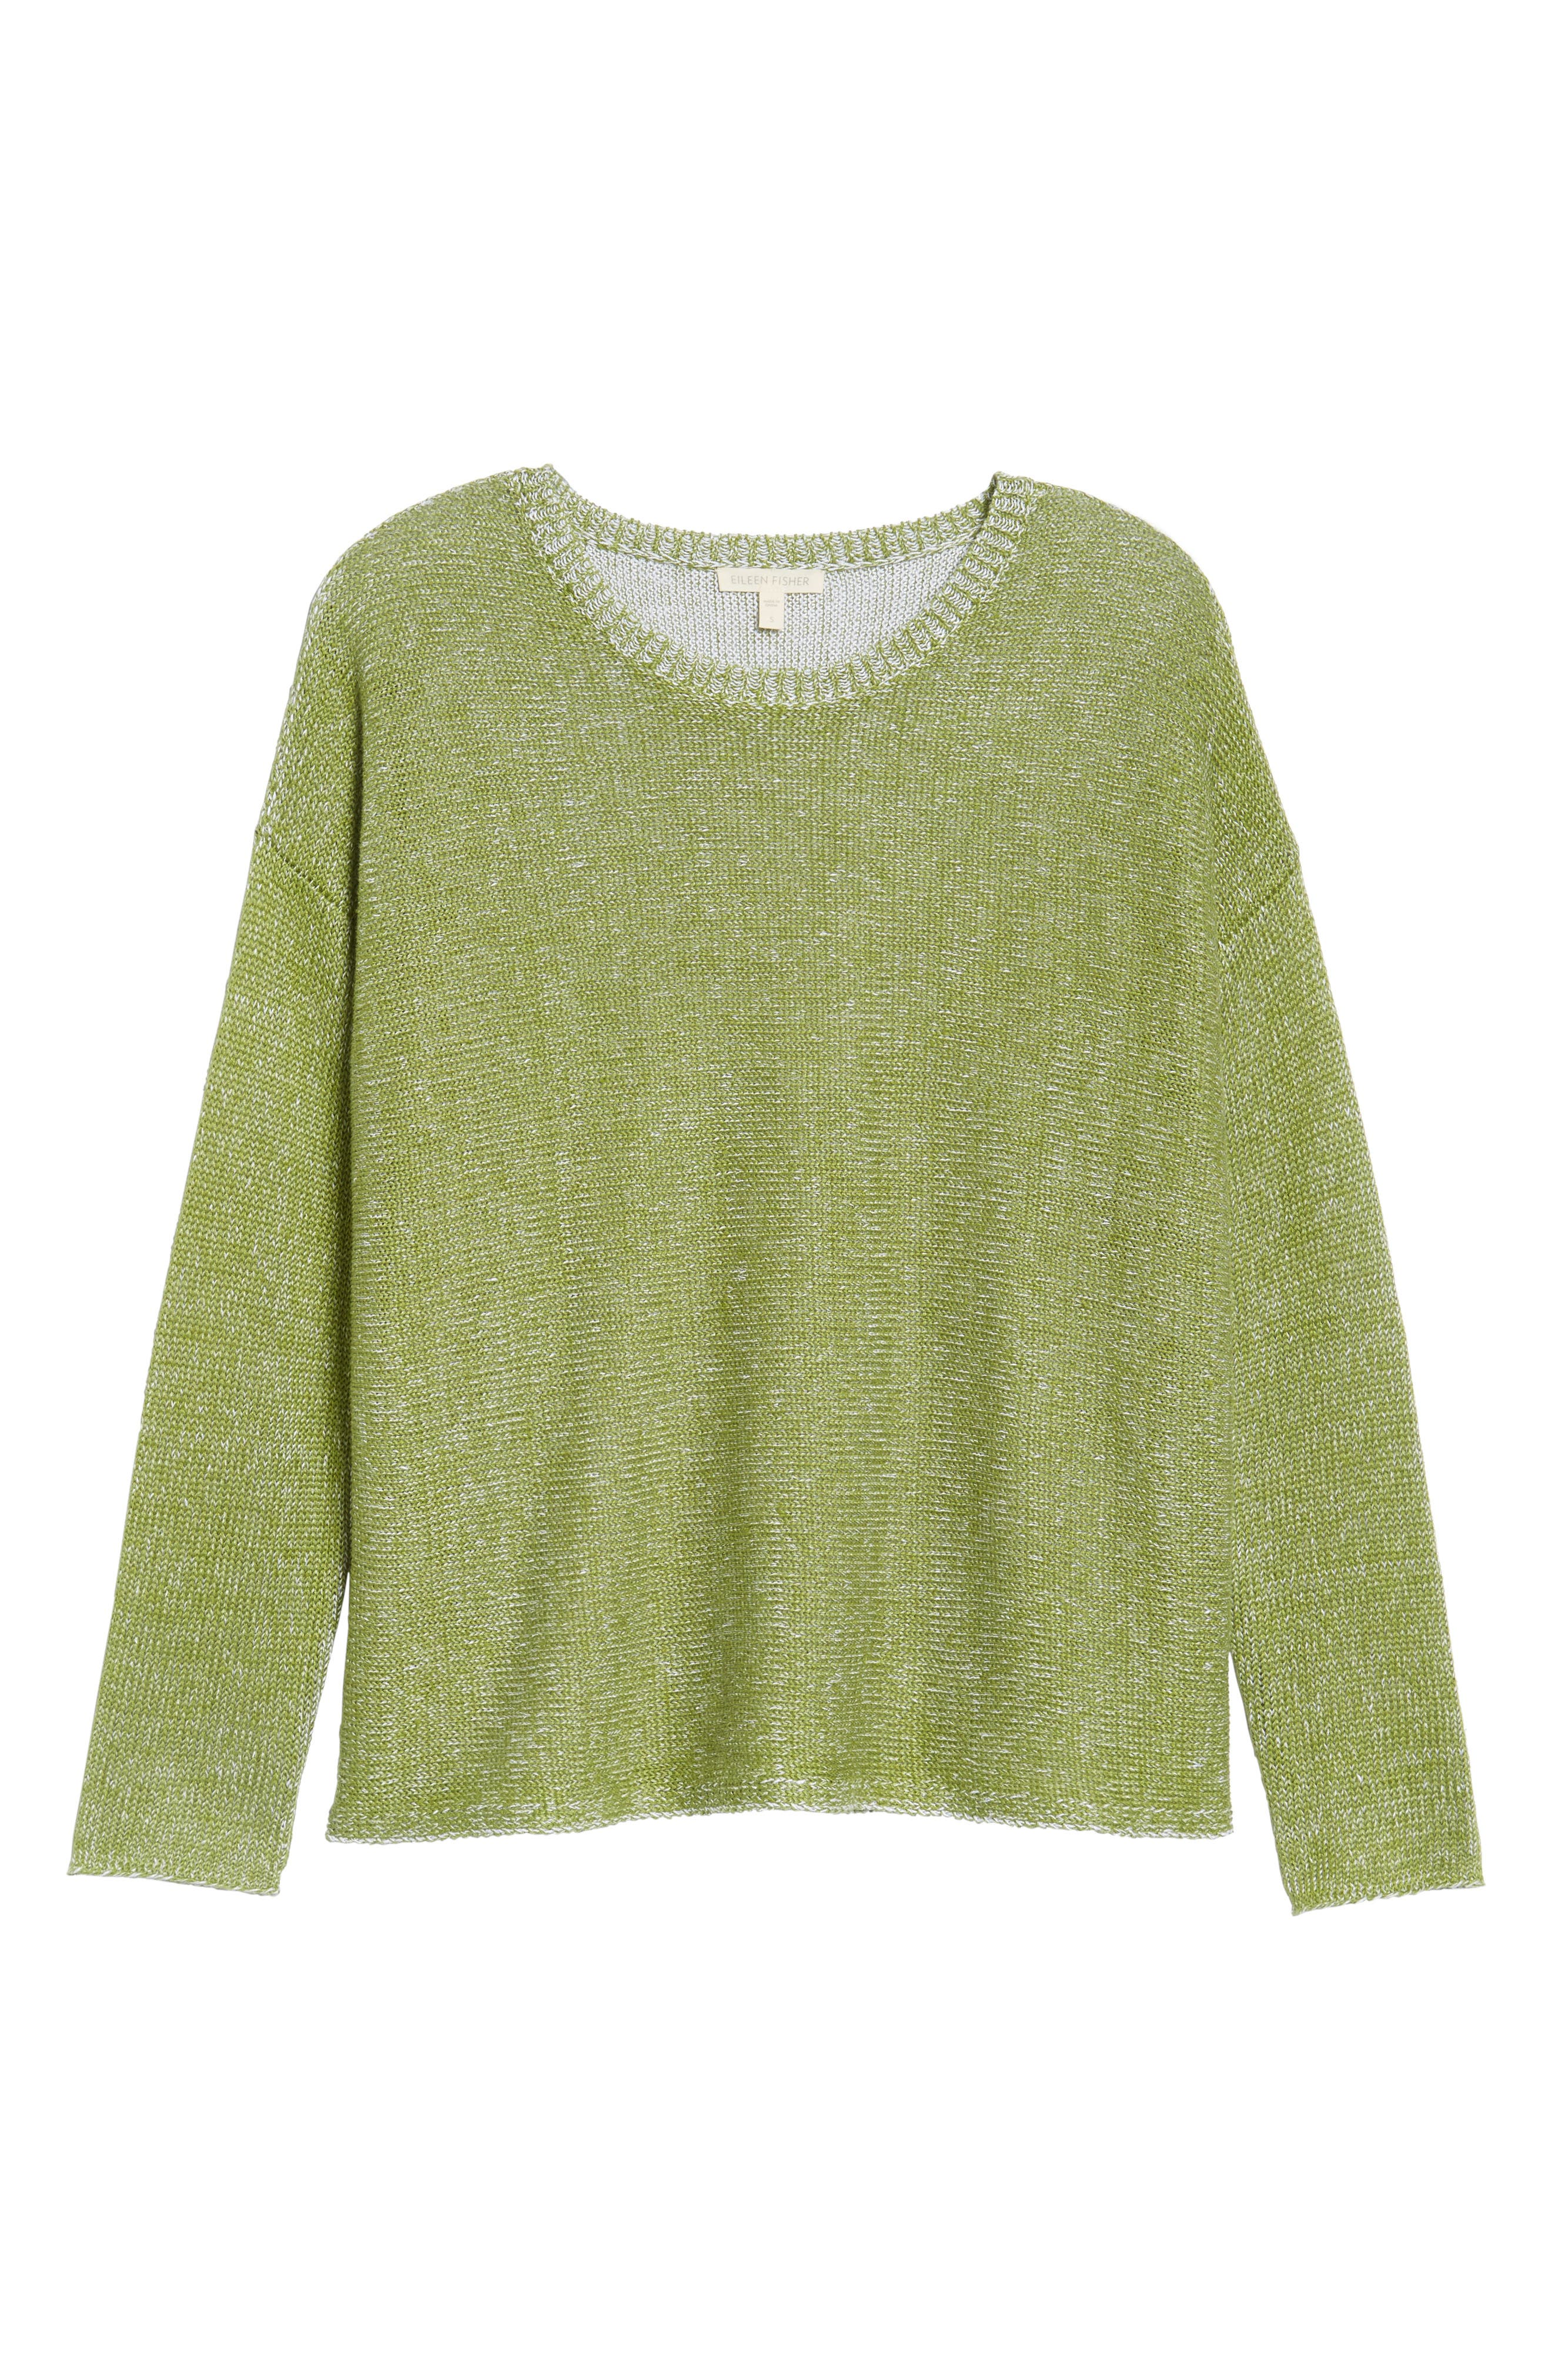 Boxy Organic Linen Sweater,                             Alternate thumbnail 6, color,                             308